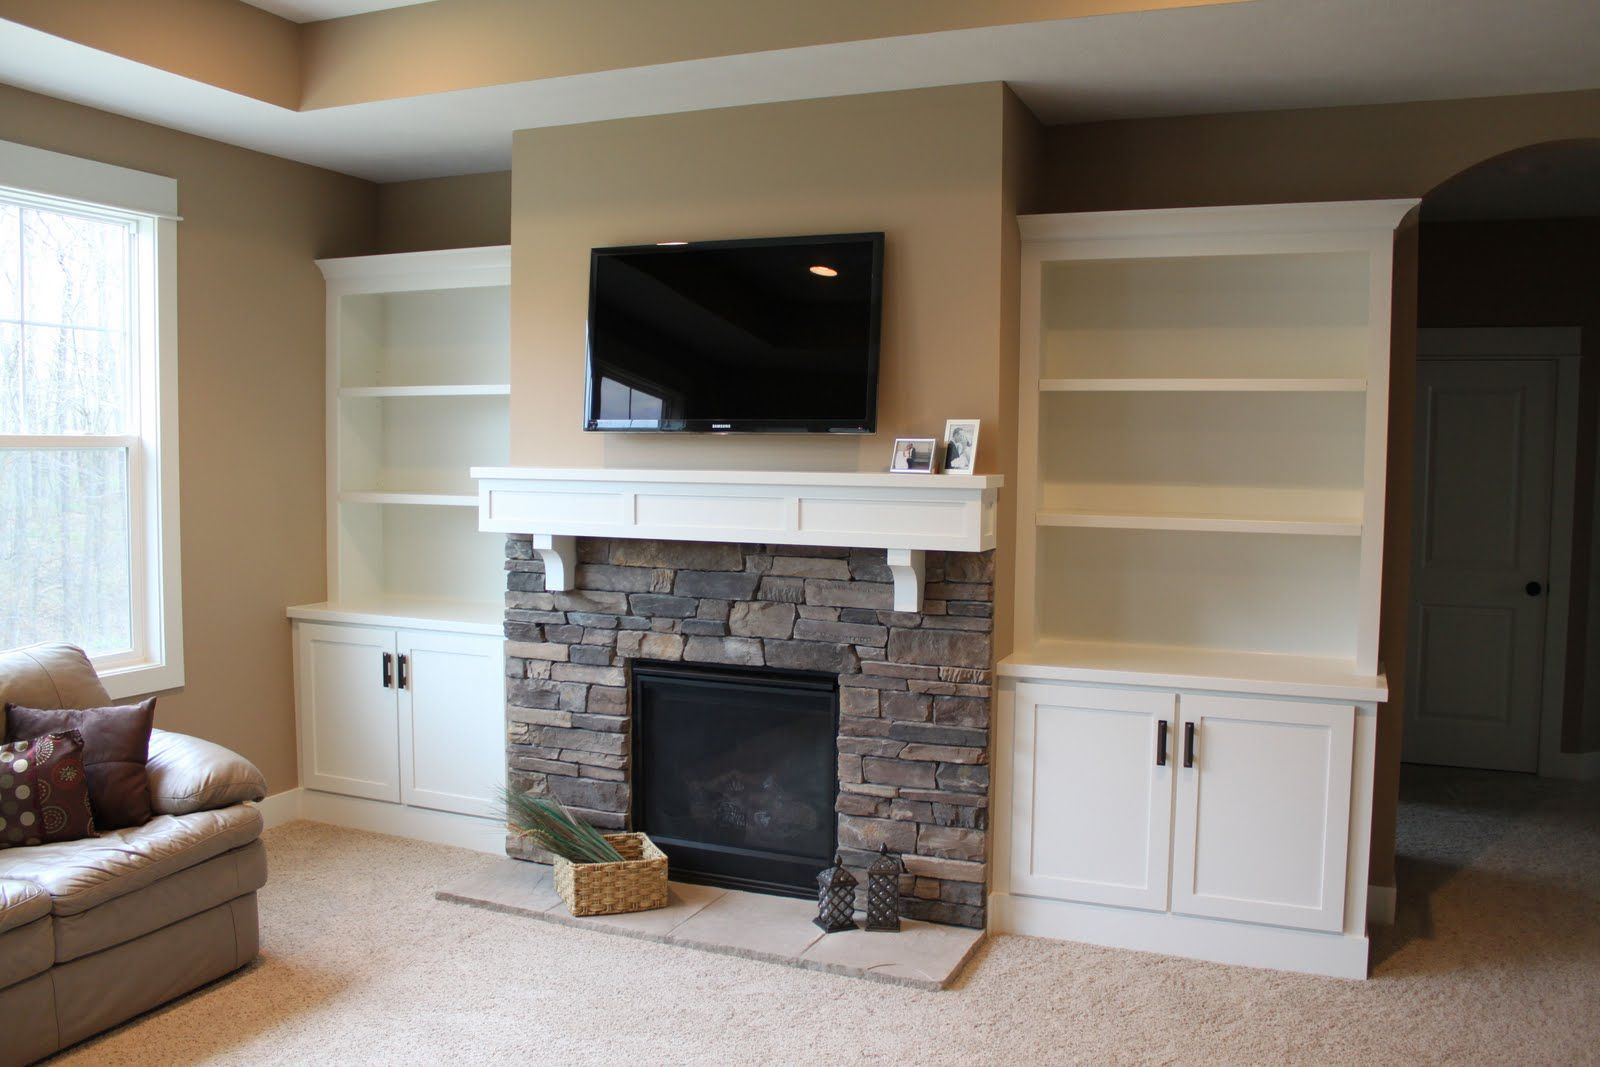 Shelves And Cupboards By Fireplace Tv Over Fire Place